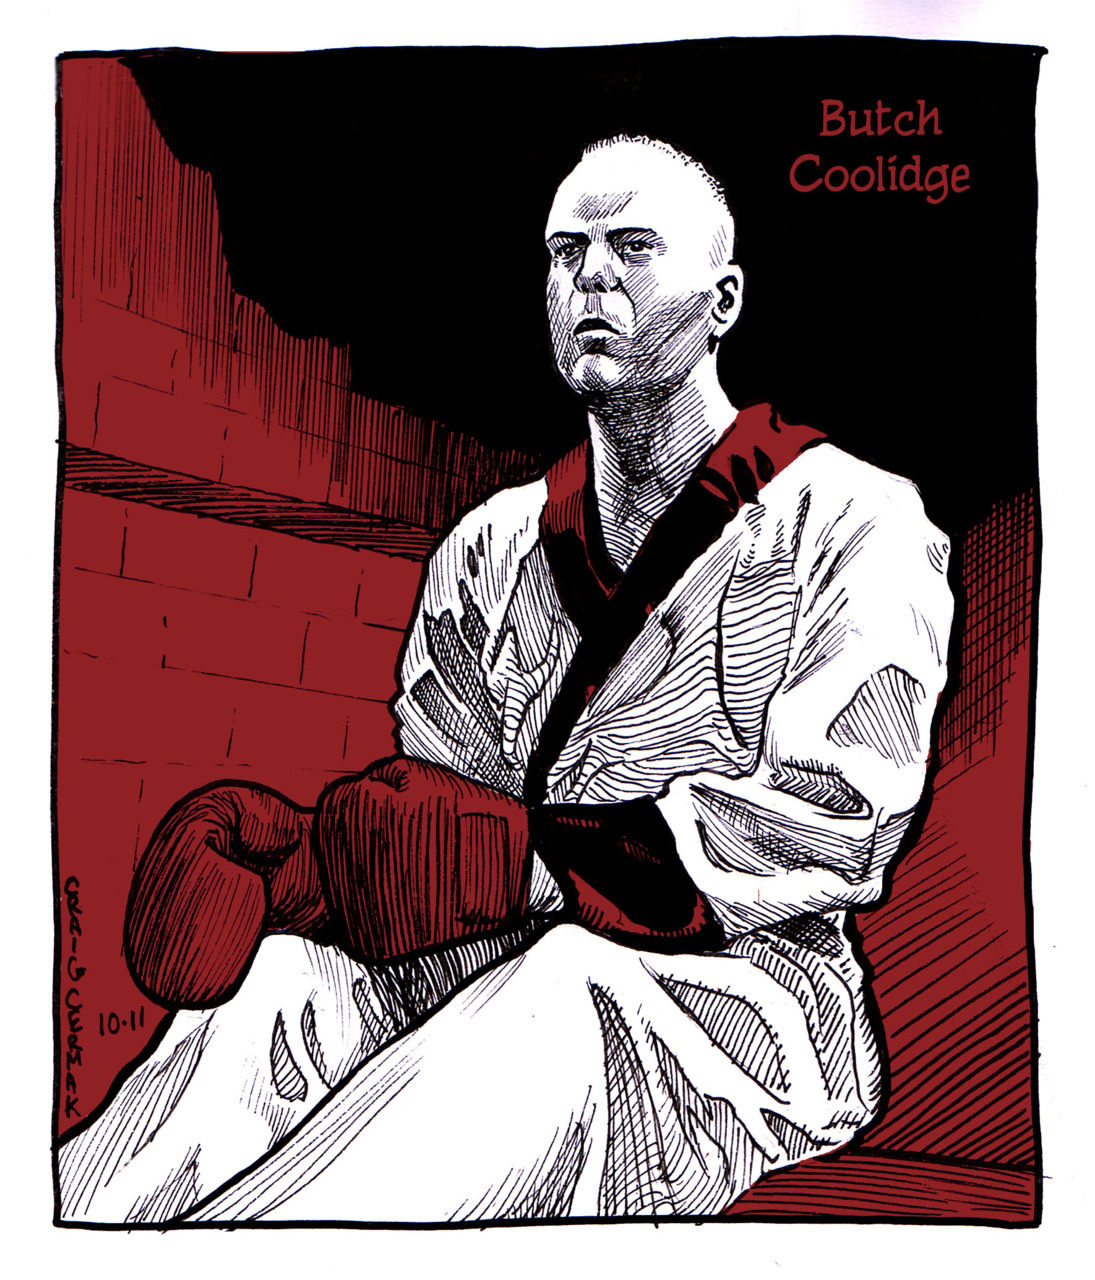 Bruce Willis as Butch Coolidge, from Pulp Fiction Done for this sketchblog I'm a part of, check it out: http://omegasketch.blogspot.com/ I also did some narrative pages awhile ago adapting a scene from Pulp Fiction, so maybe I'm upload those soon for those interested. -Craig Cermak